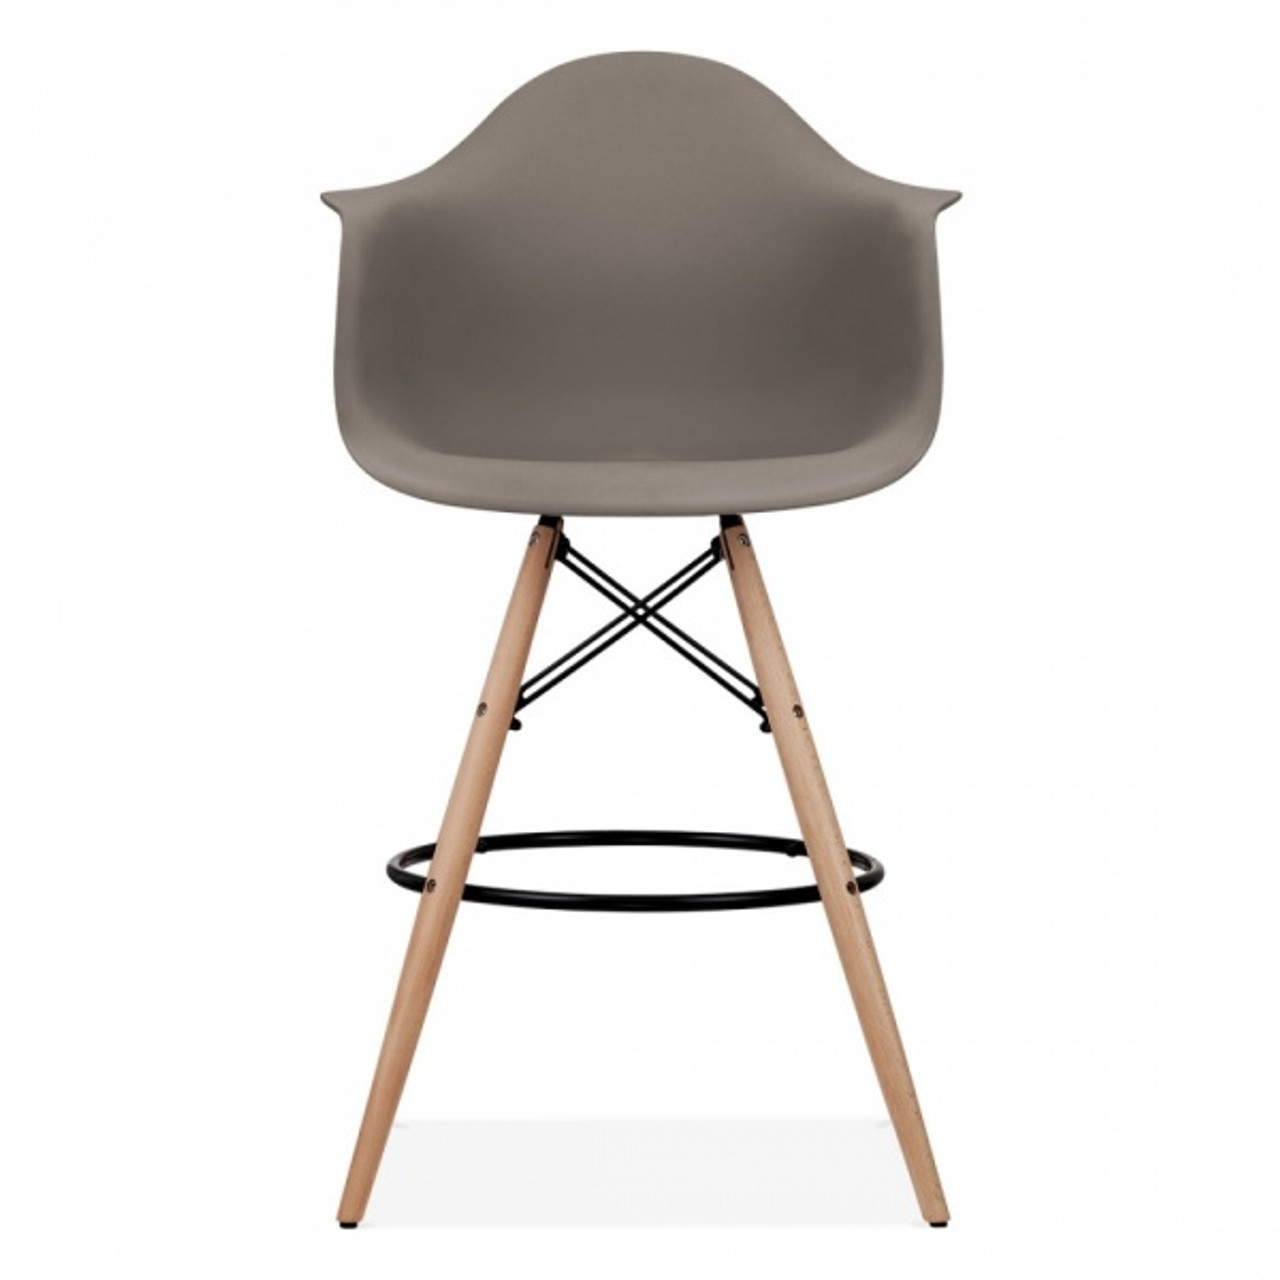 Eames Inspired Scandi PM Armchair Stool   Truffle